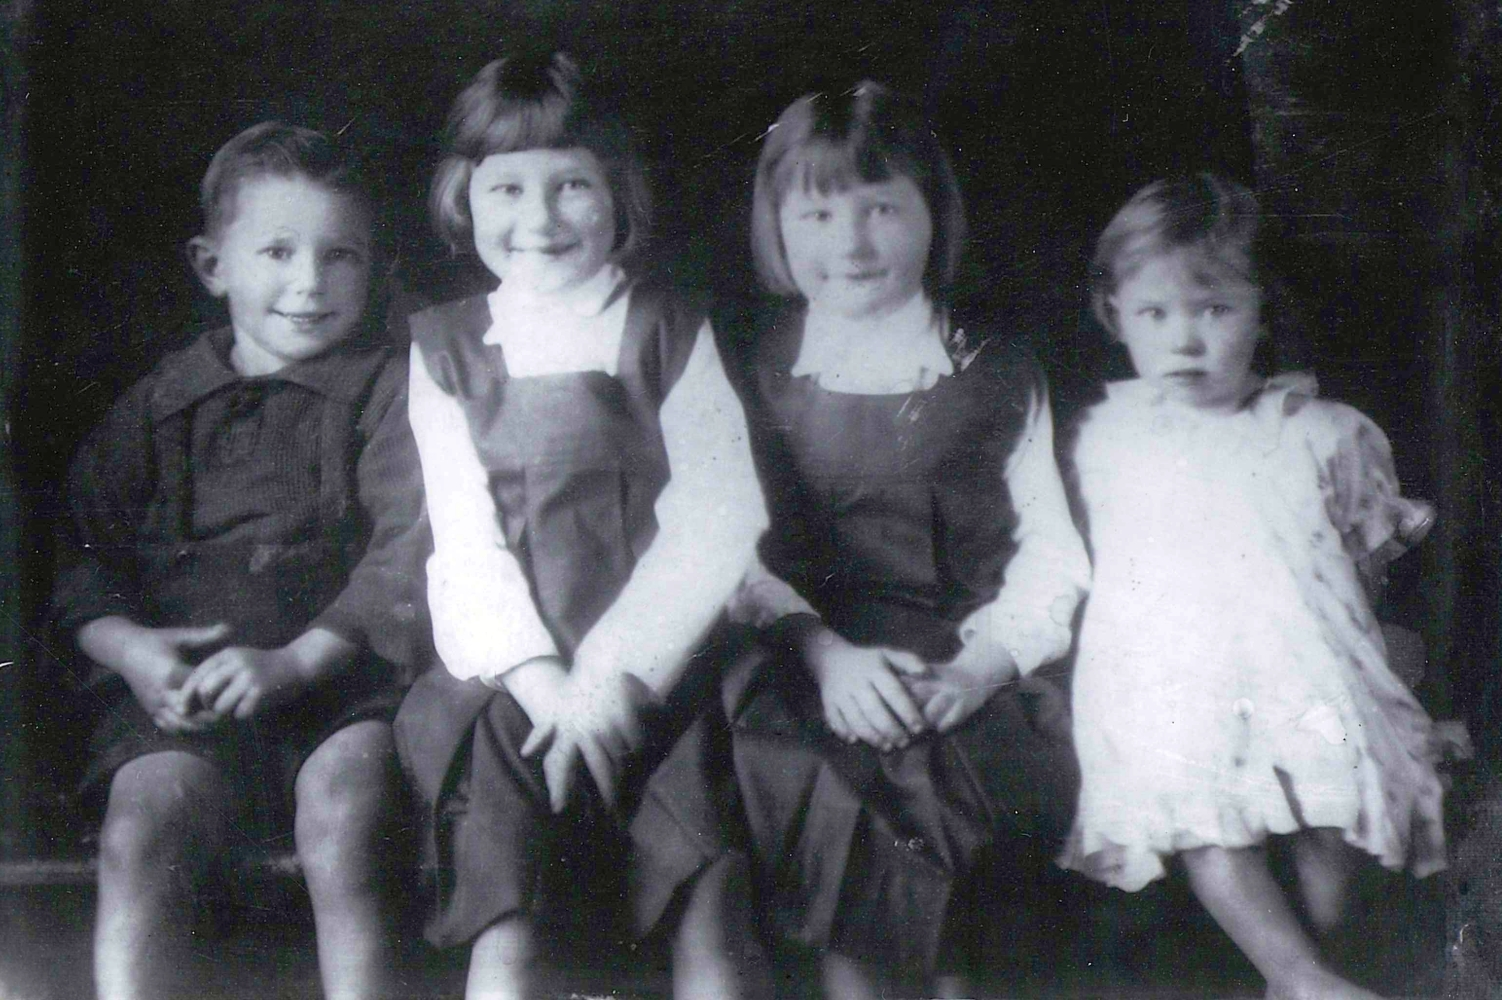 Black and white photograph of the first four Kuklinski children, sitting: Benna and Pauline in the middle with too-large gym-lips, and with  similar page-boy hair cuts, Joseph on one side in shorts and a dark shirt smiling as widely as Benna, and Gertie on the other  side in a frilly dress looking slightly more suspiciously at the photographer.